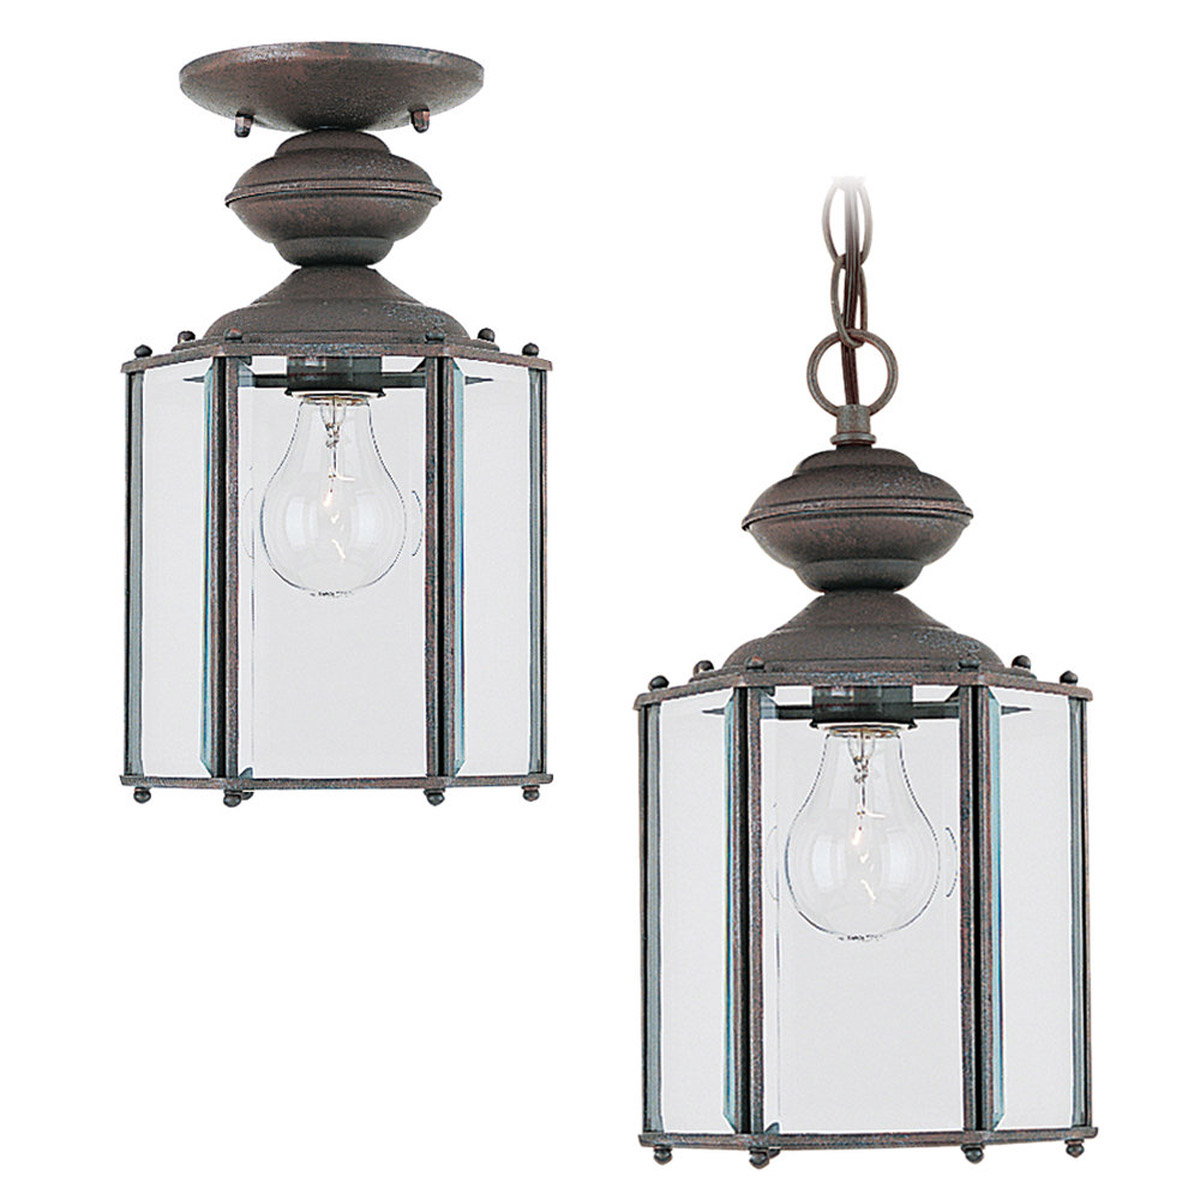 Sea Gull Lighting Classico 1 Light Outdoor Pendant in Sienna 6008-26